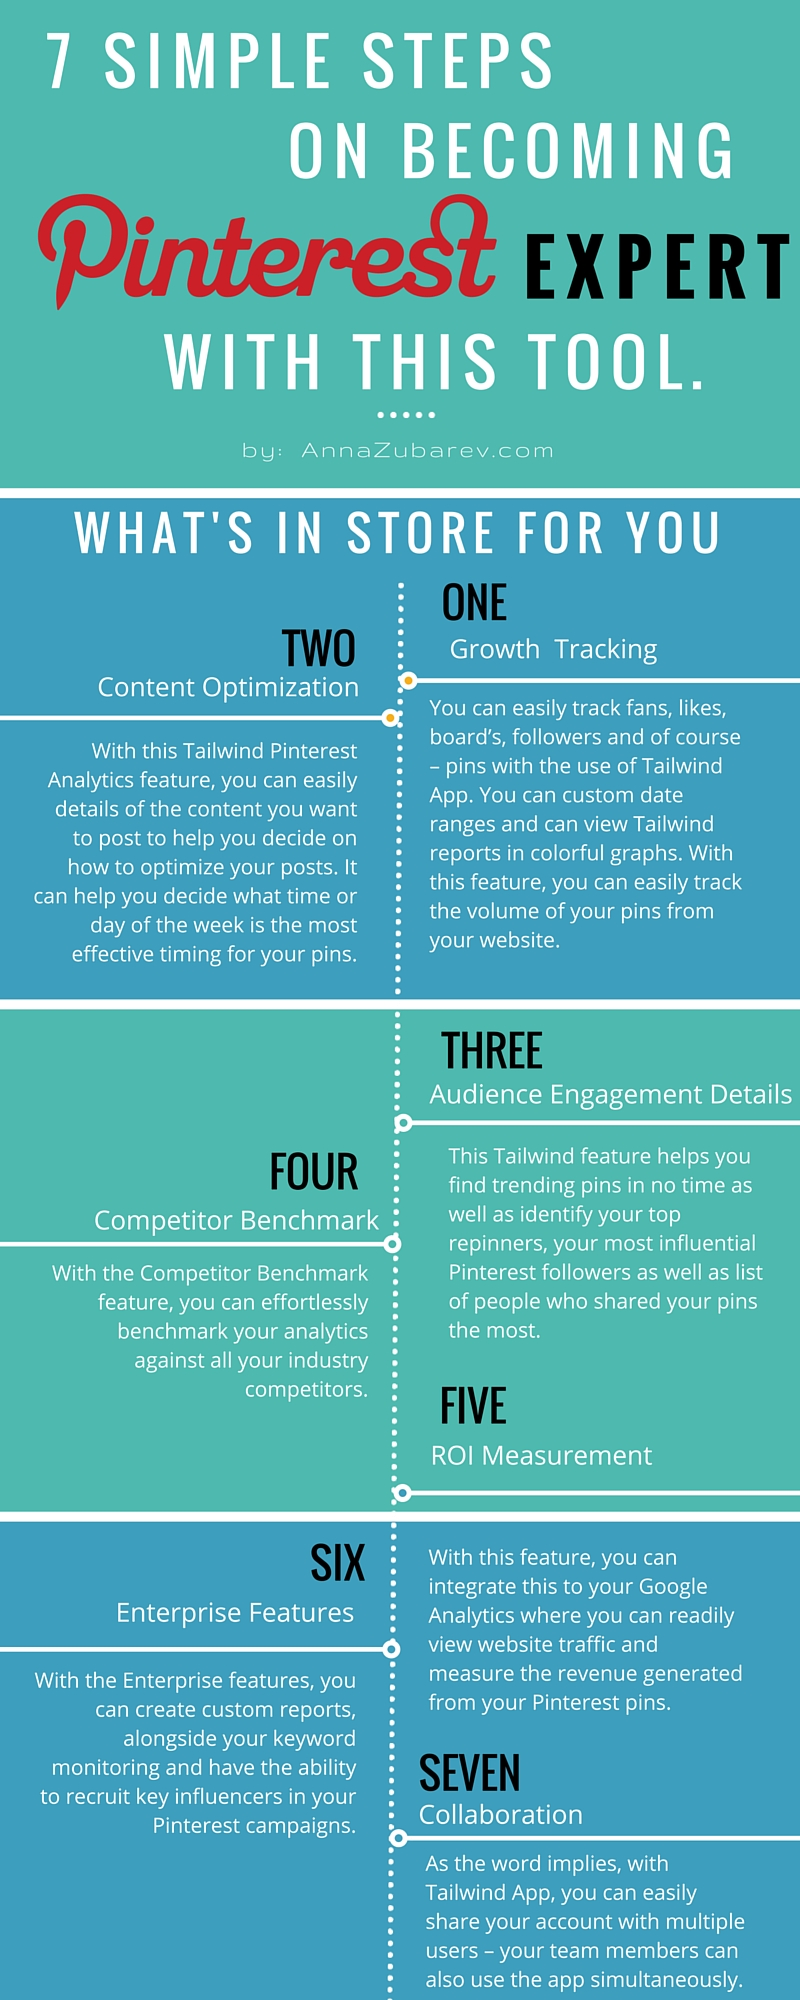 7 Simple Steps on Becoming A Pinterest Expert. via @annazubarev #Infographic.